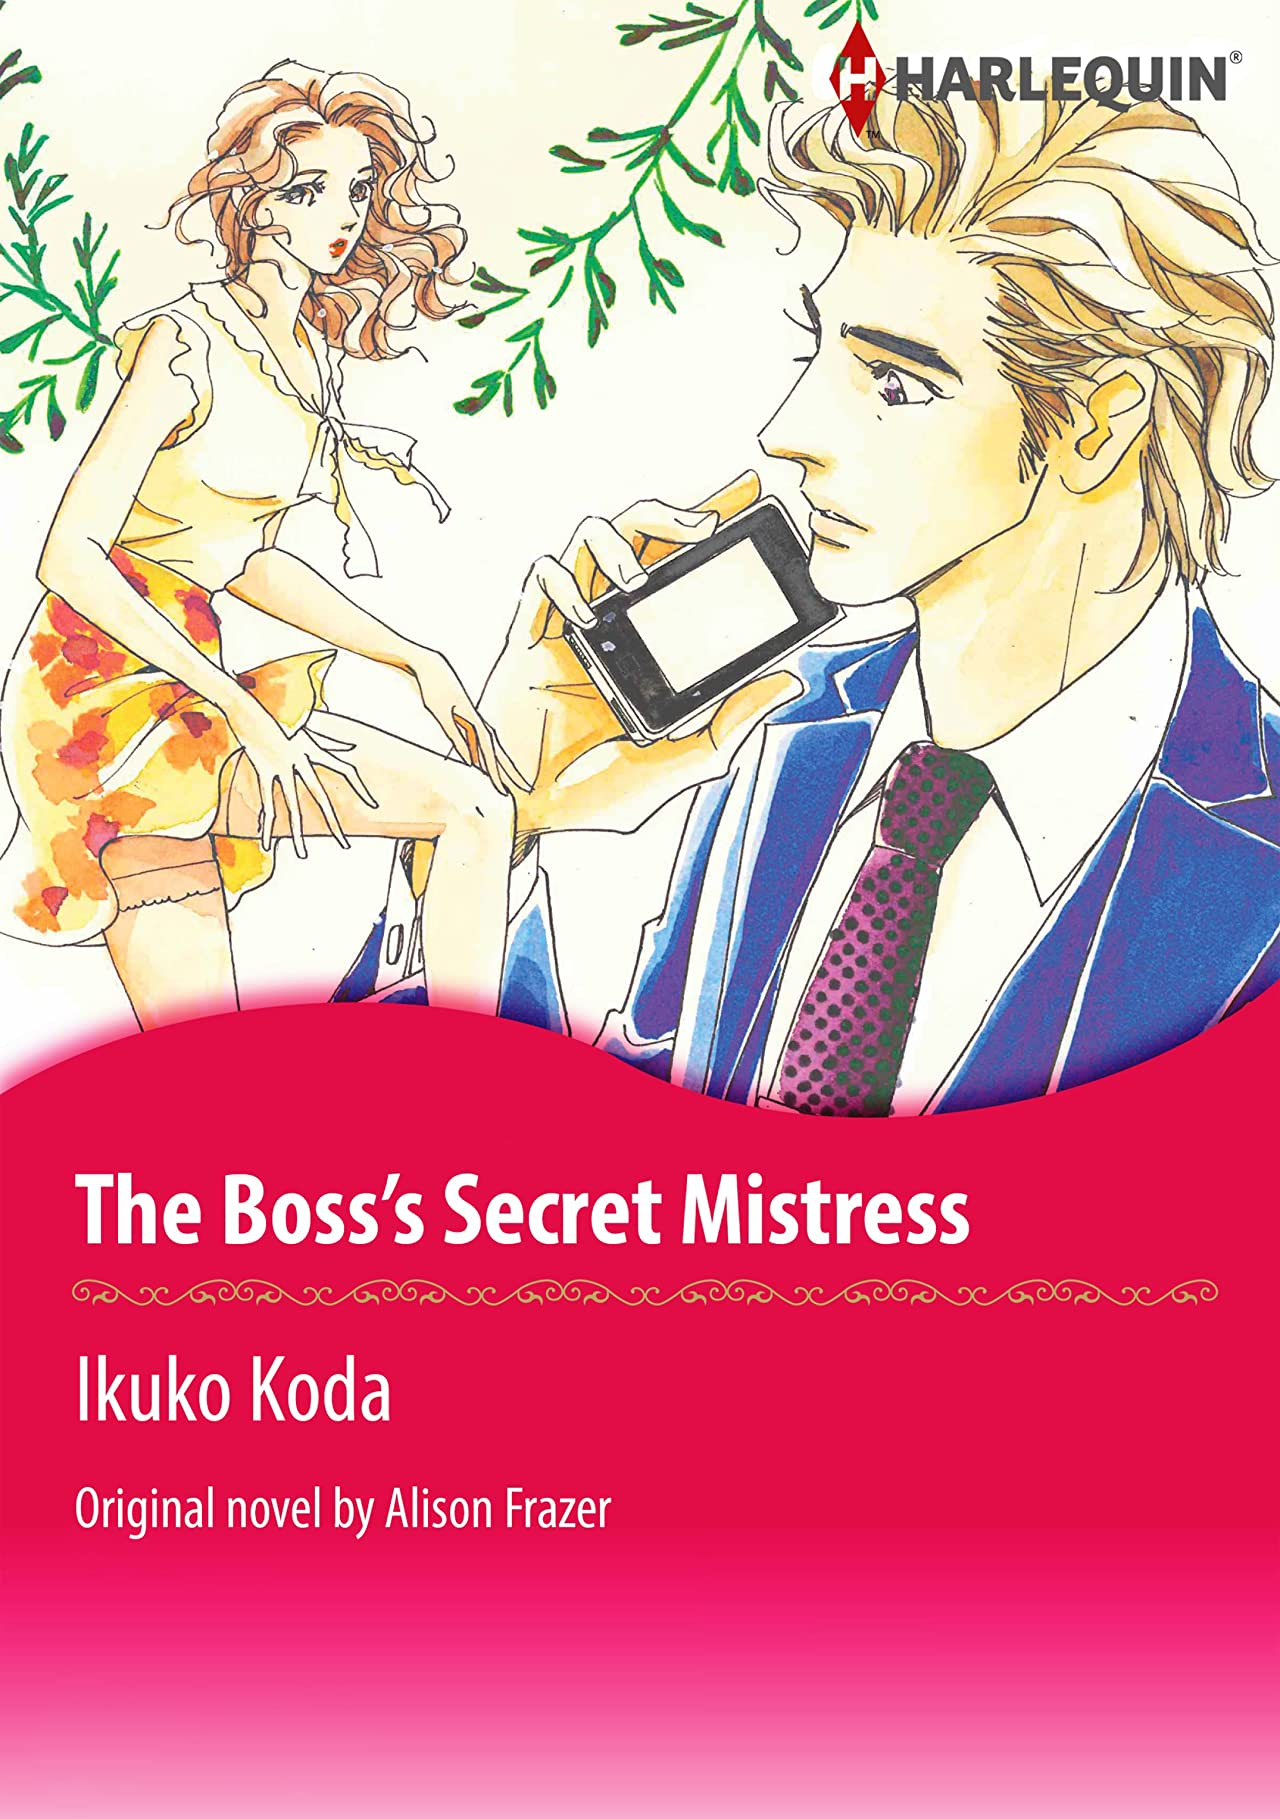 The Boss's Secret Mistress